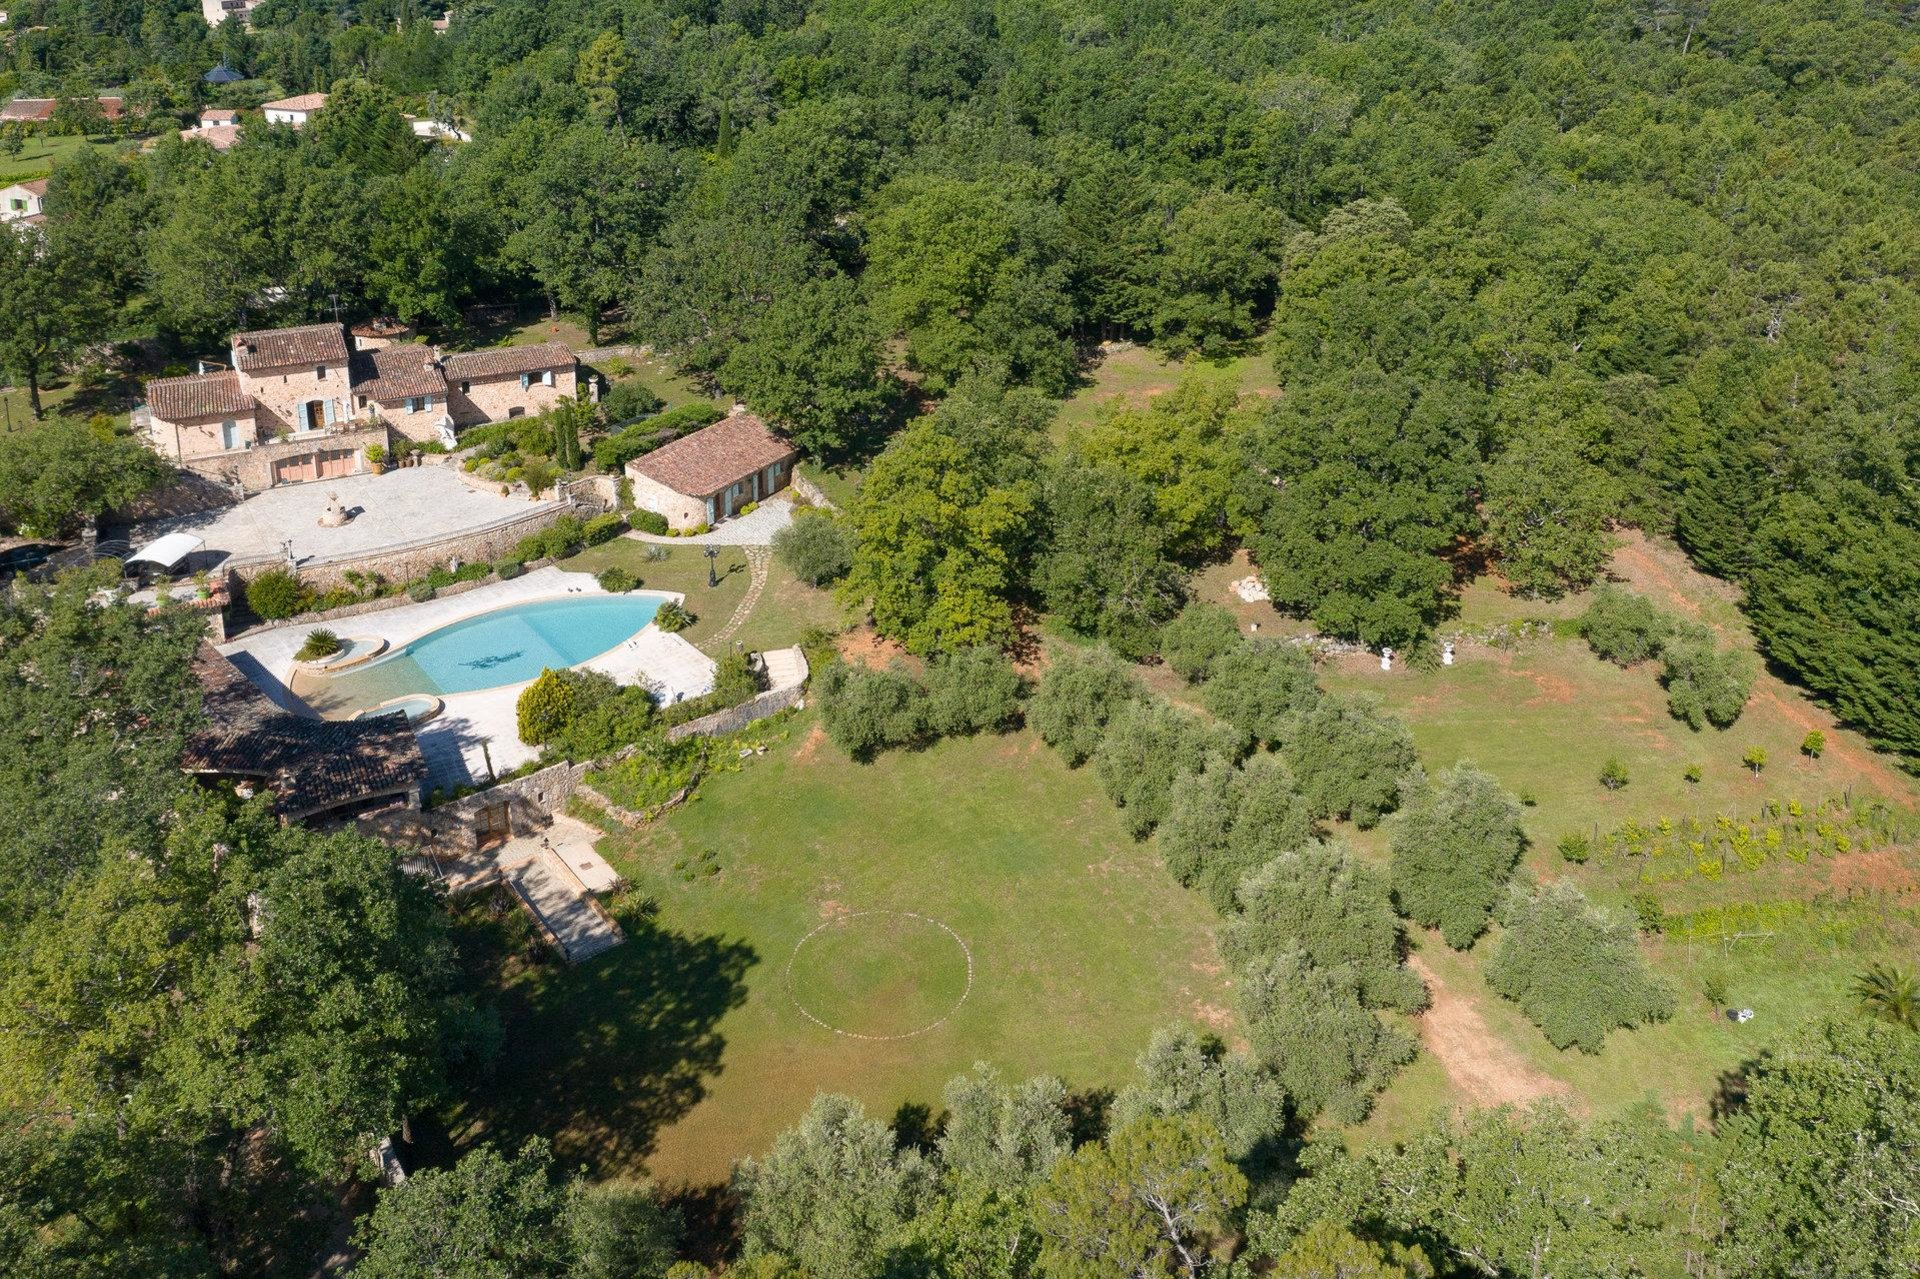 large plot of land and forest area of property in montauroux